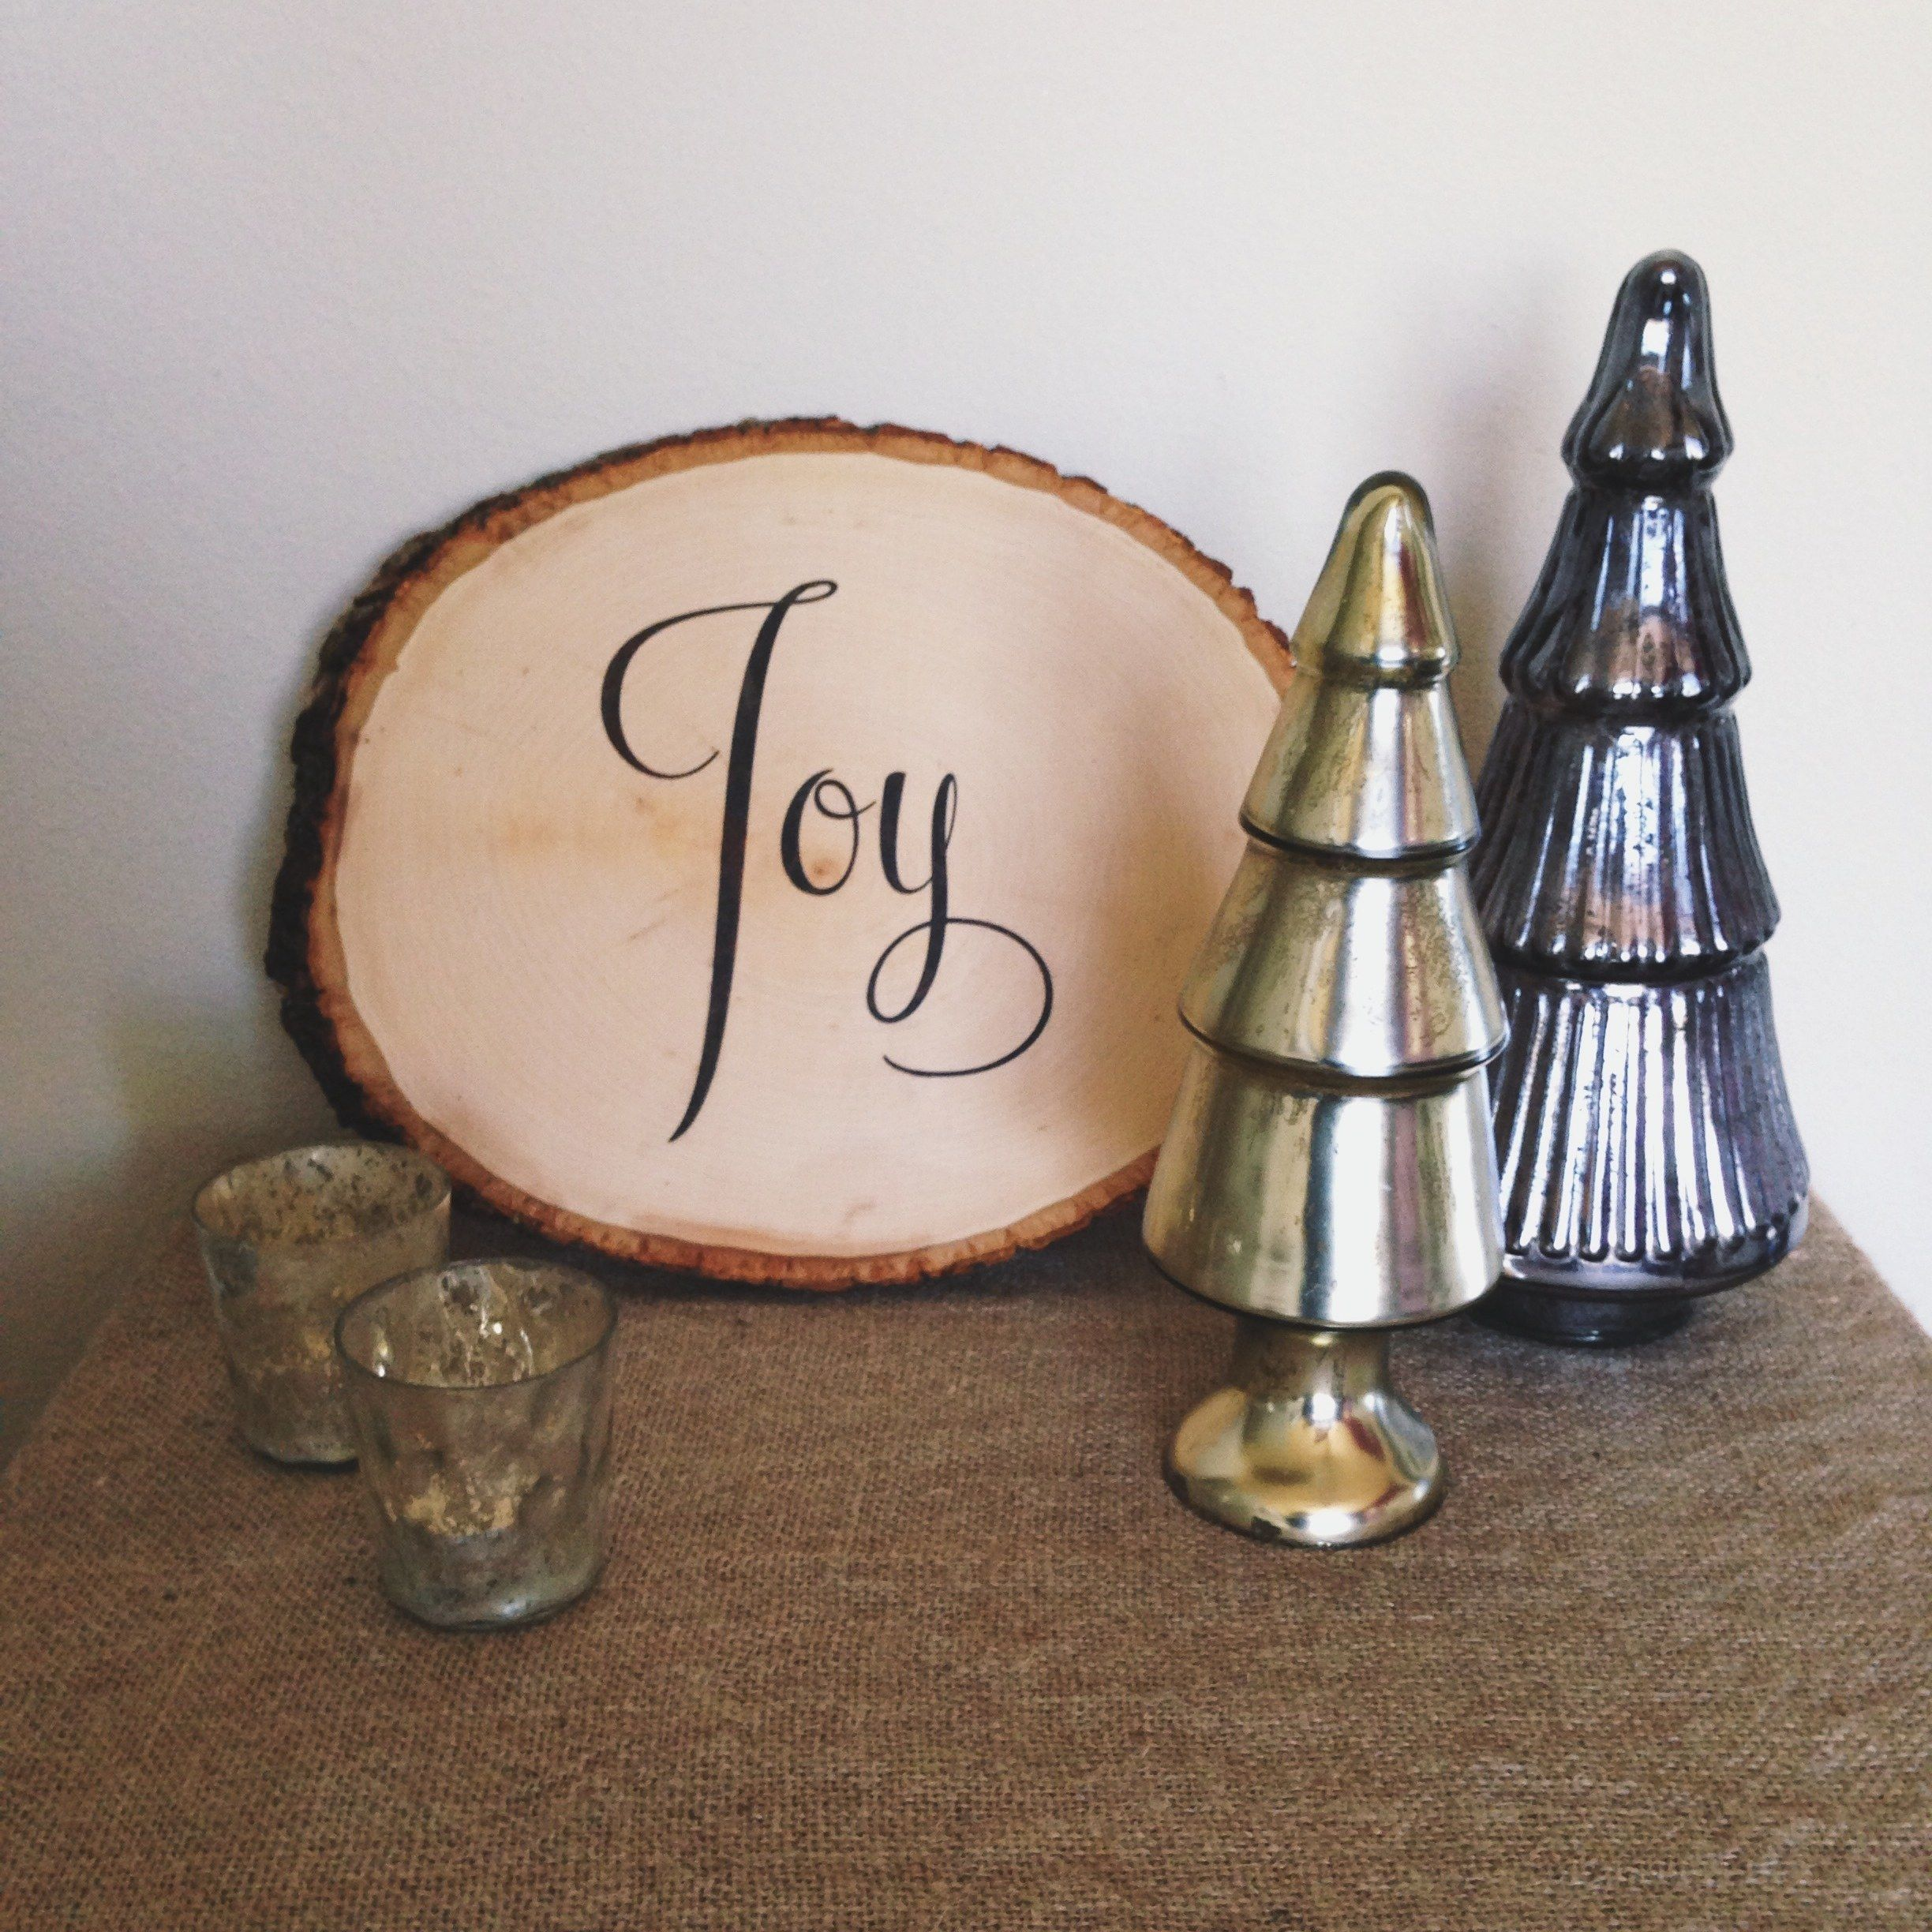 Holiday diy typographic wood wall art glue sponge card stock and